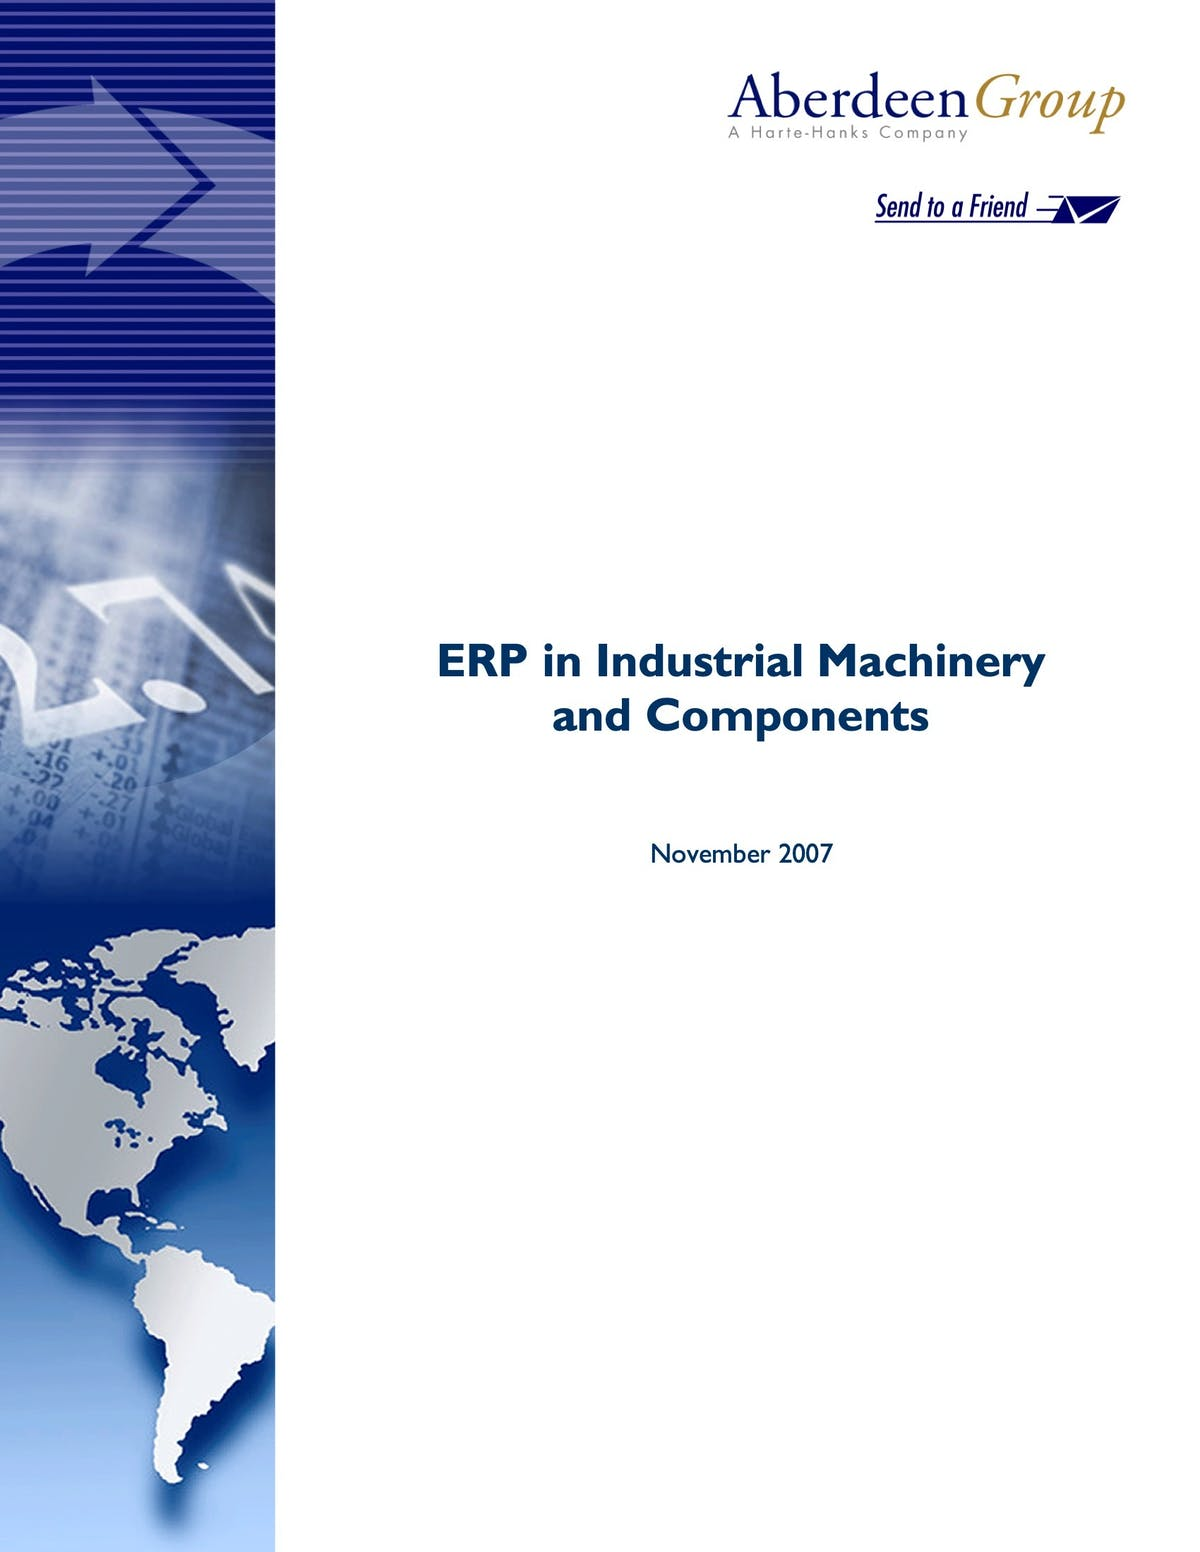 Infor VISUAL White Paper - ERP in Industrial Machinery and Components